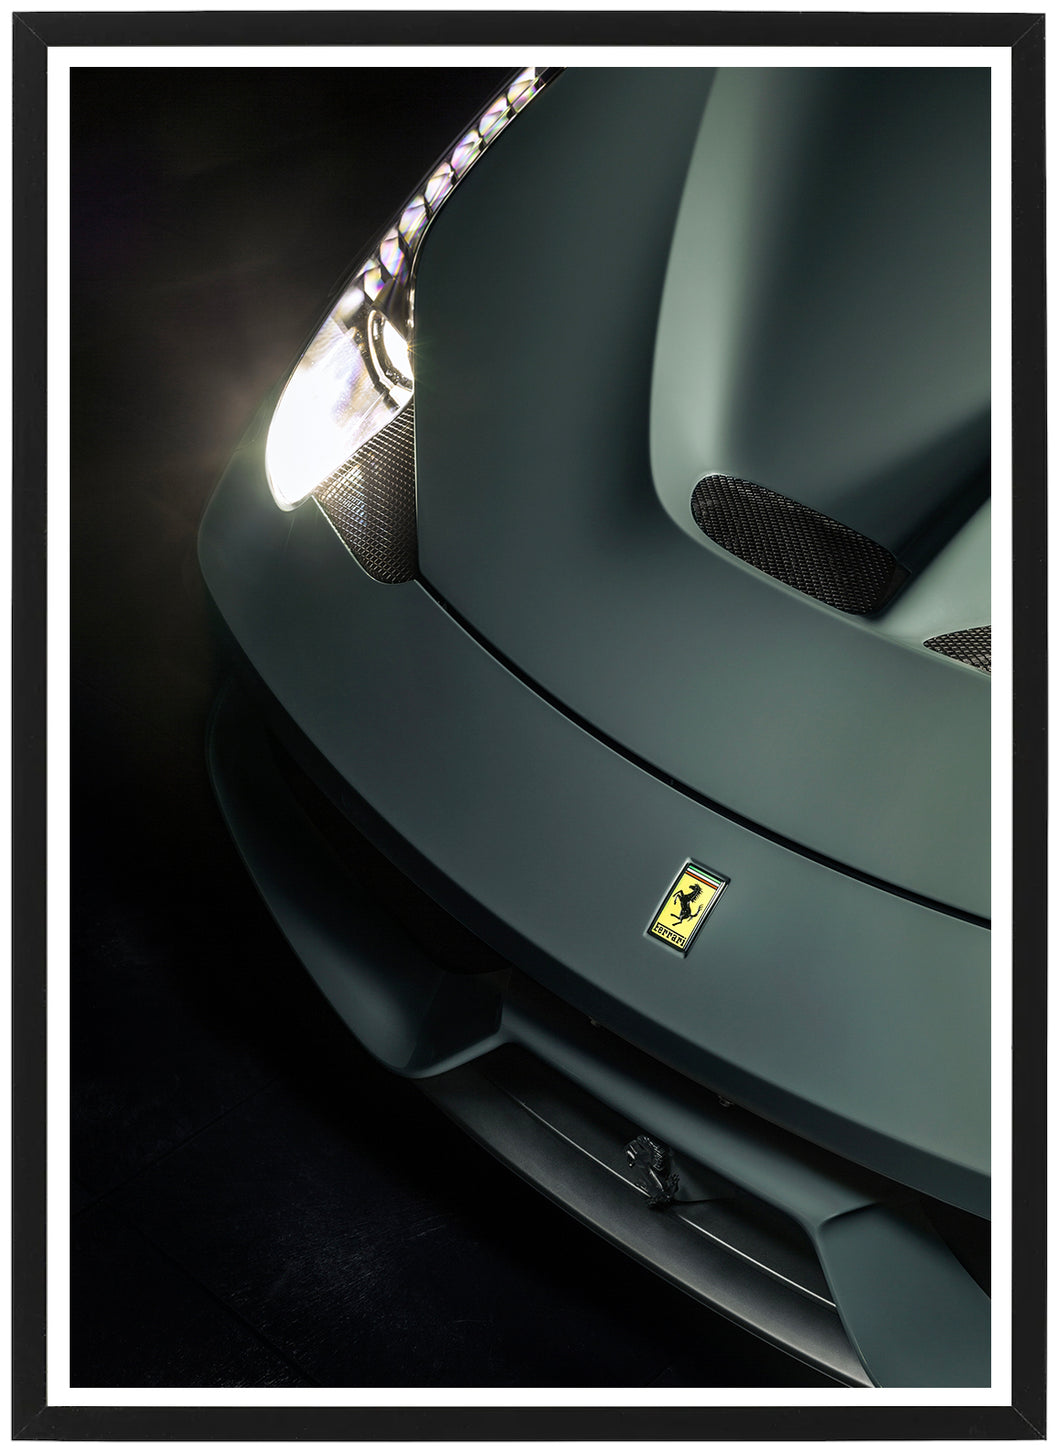 Ferrari 458 Speciale detail poster th